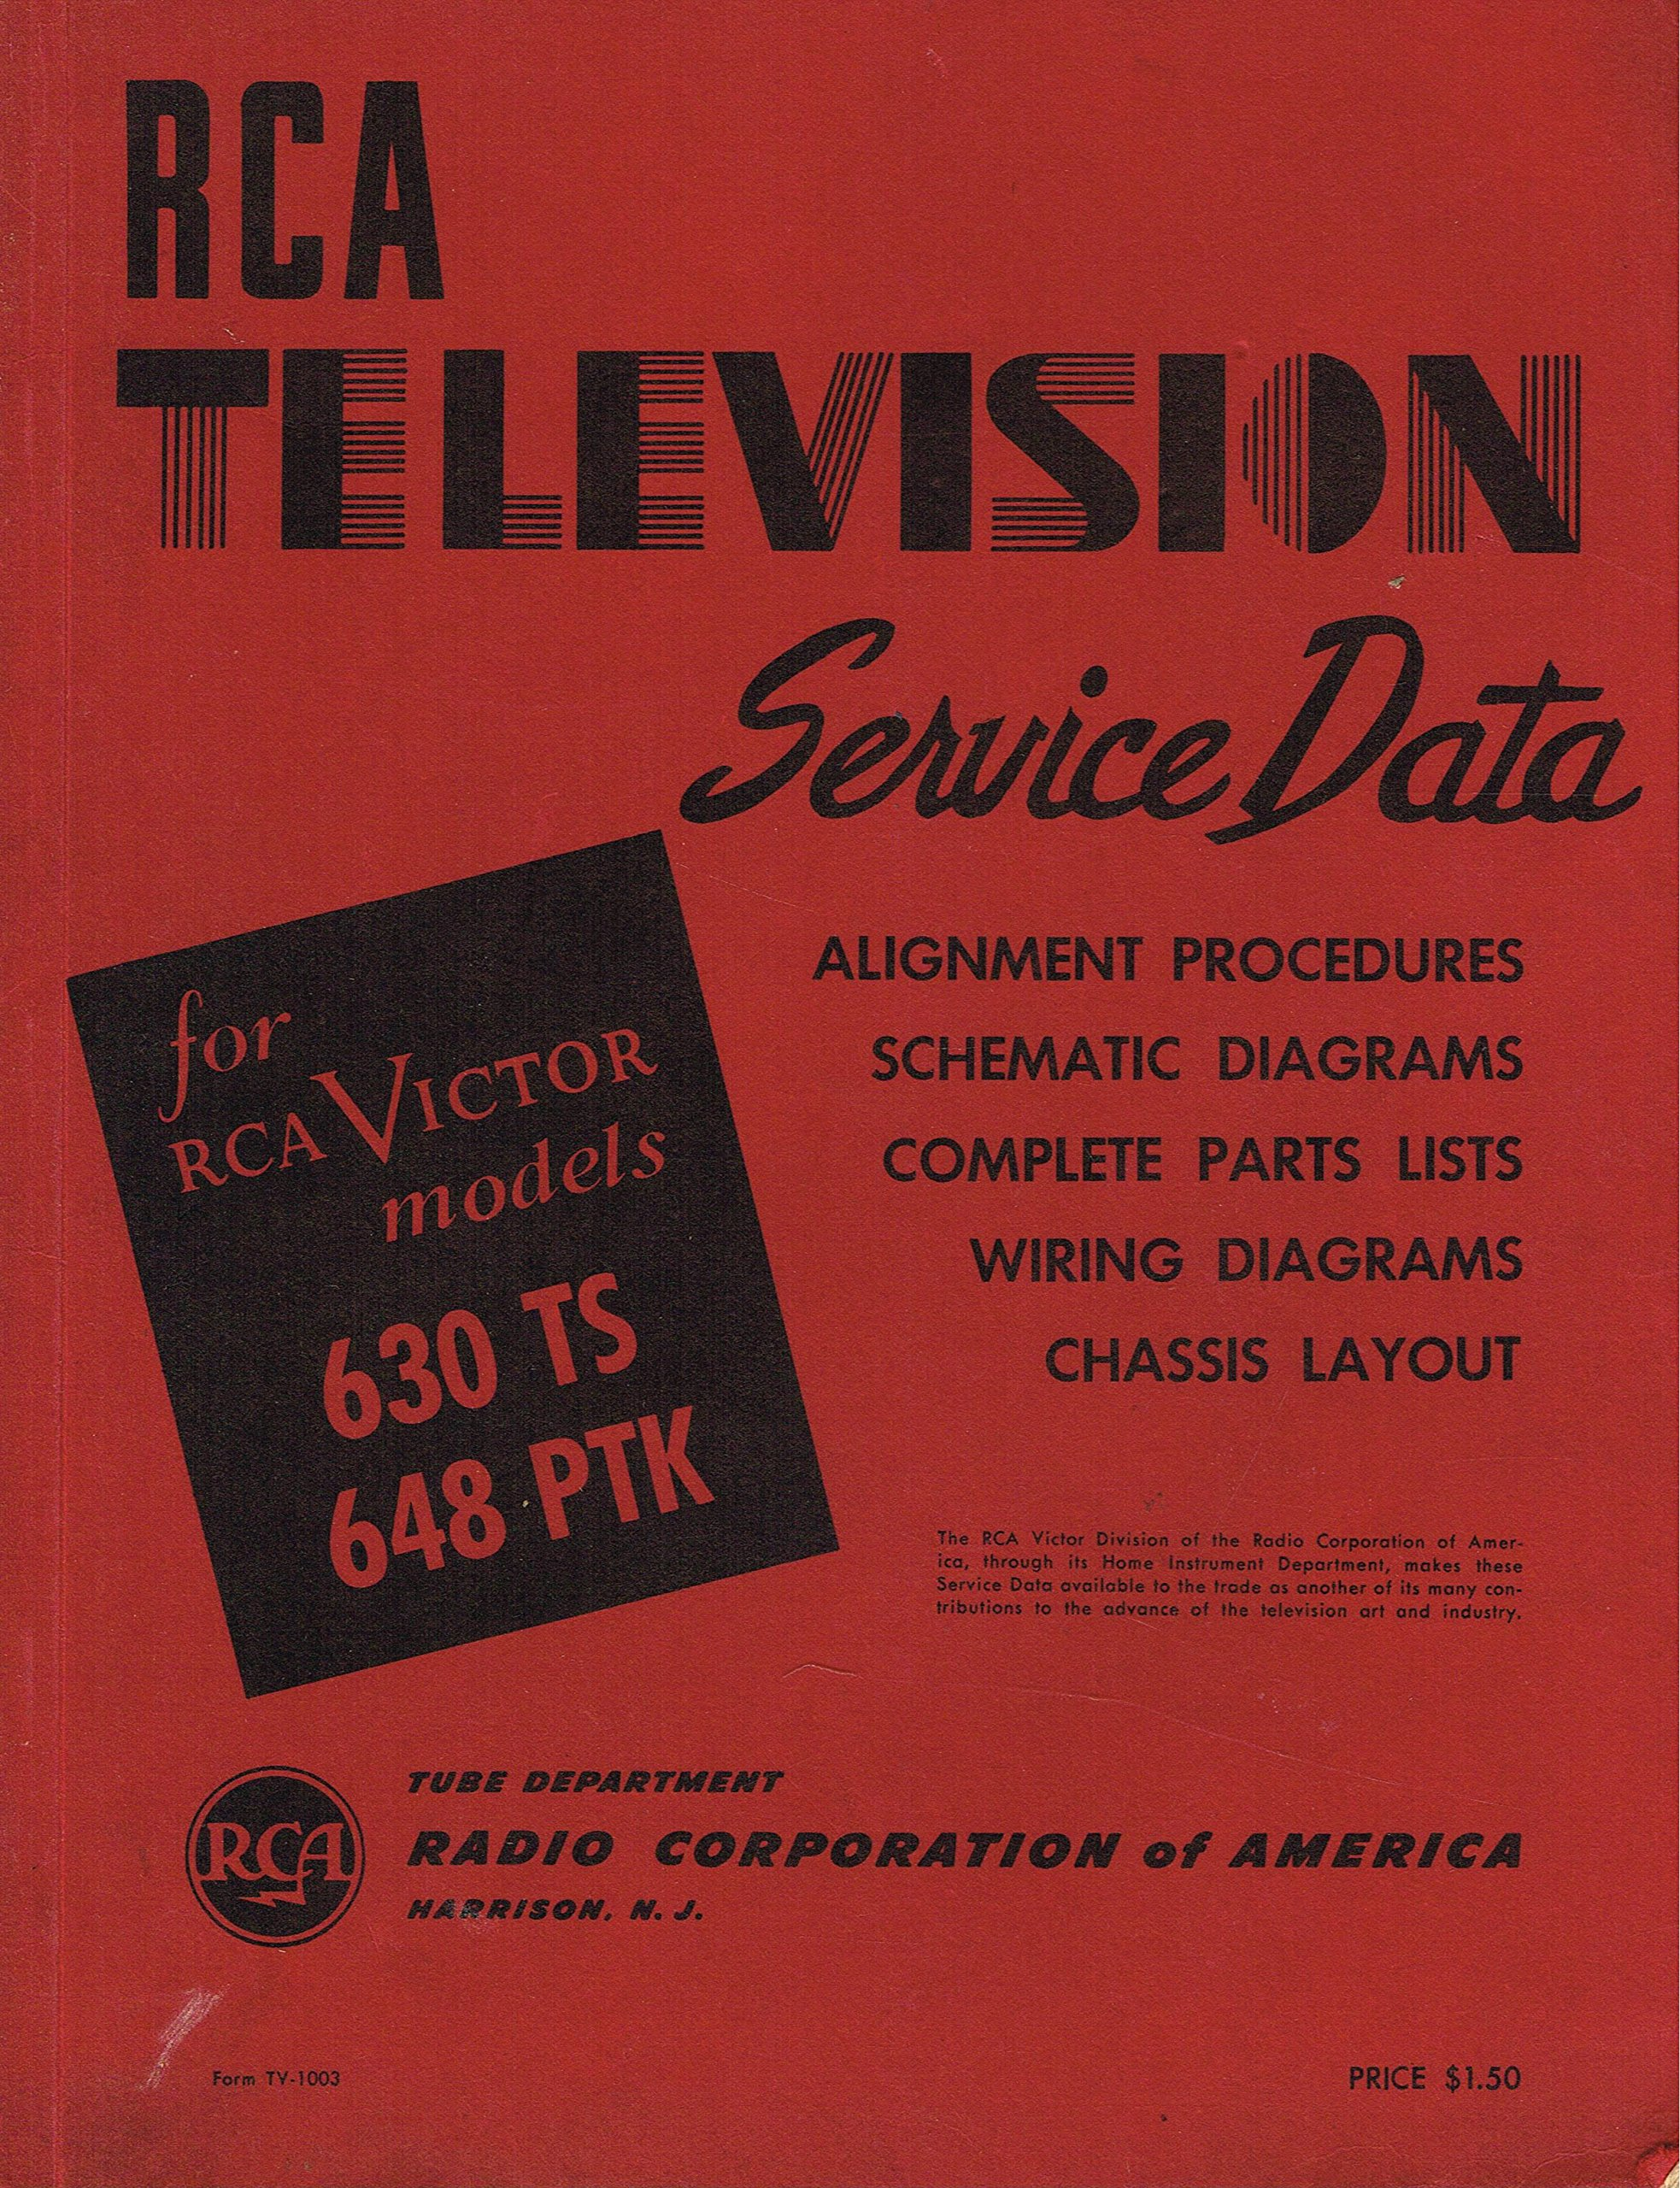 television service data for rca victor models 630 ts & 648 ptk (alignment  procedures, schematic diagrams, complete parts lists, wiring diagrams,